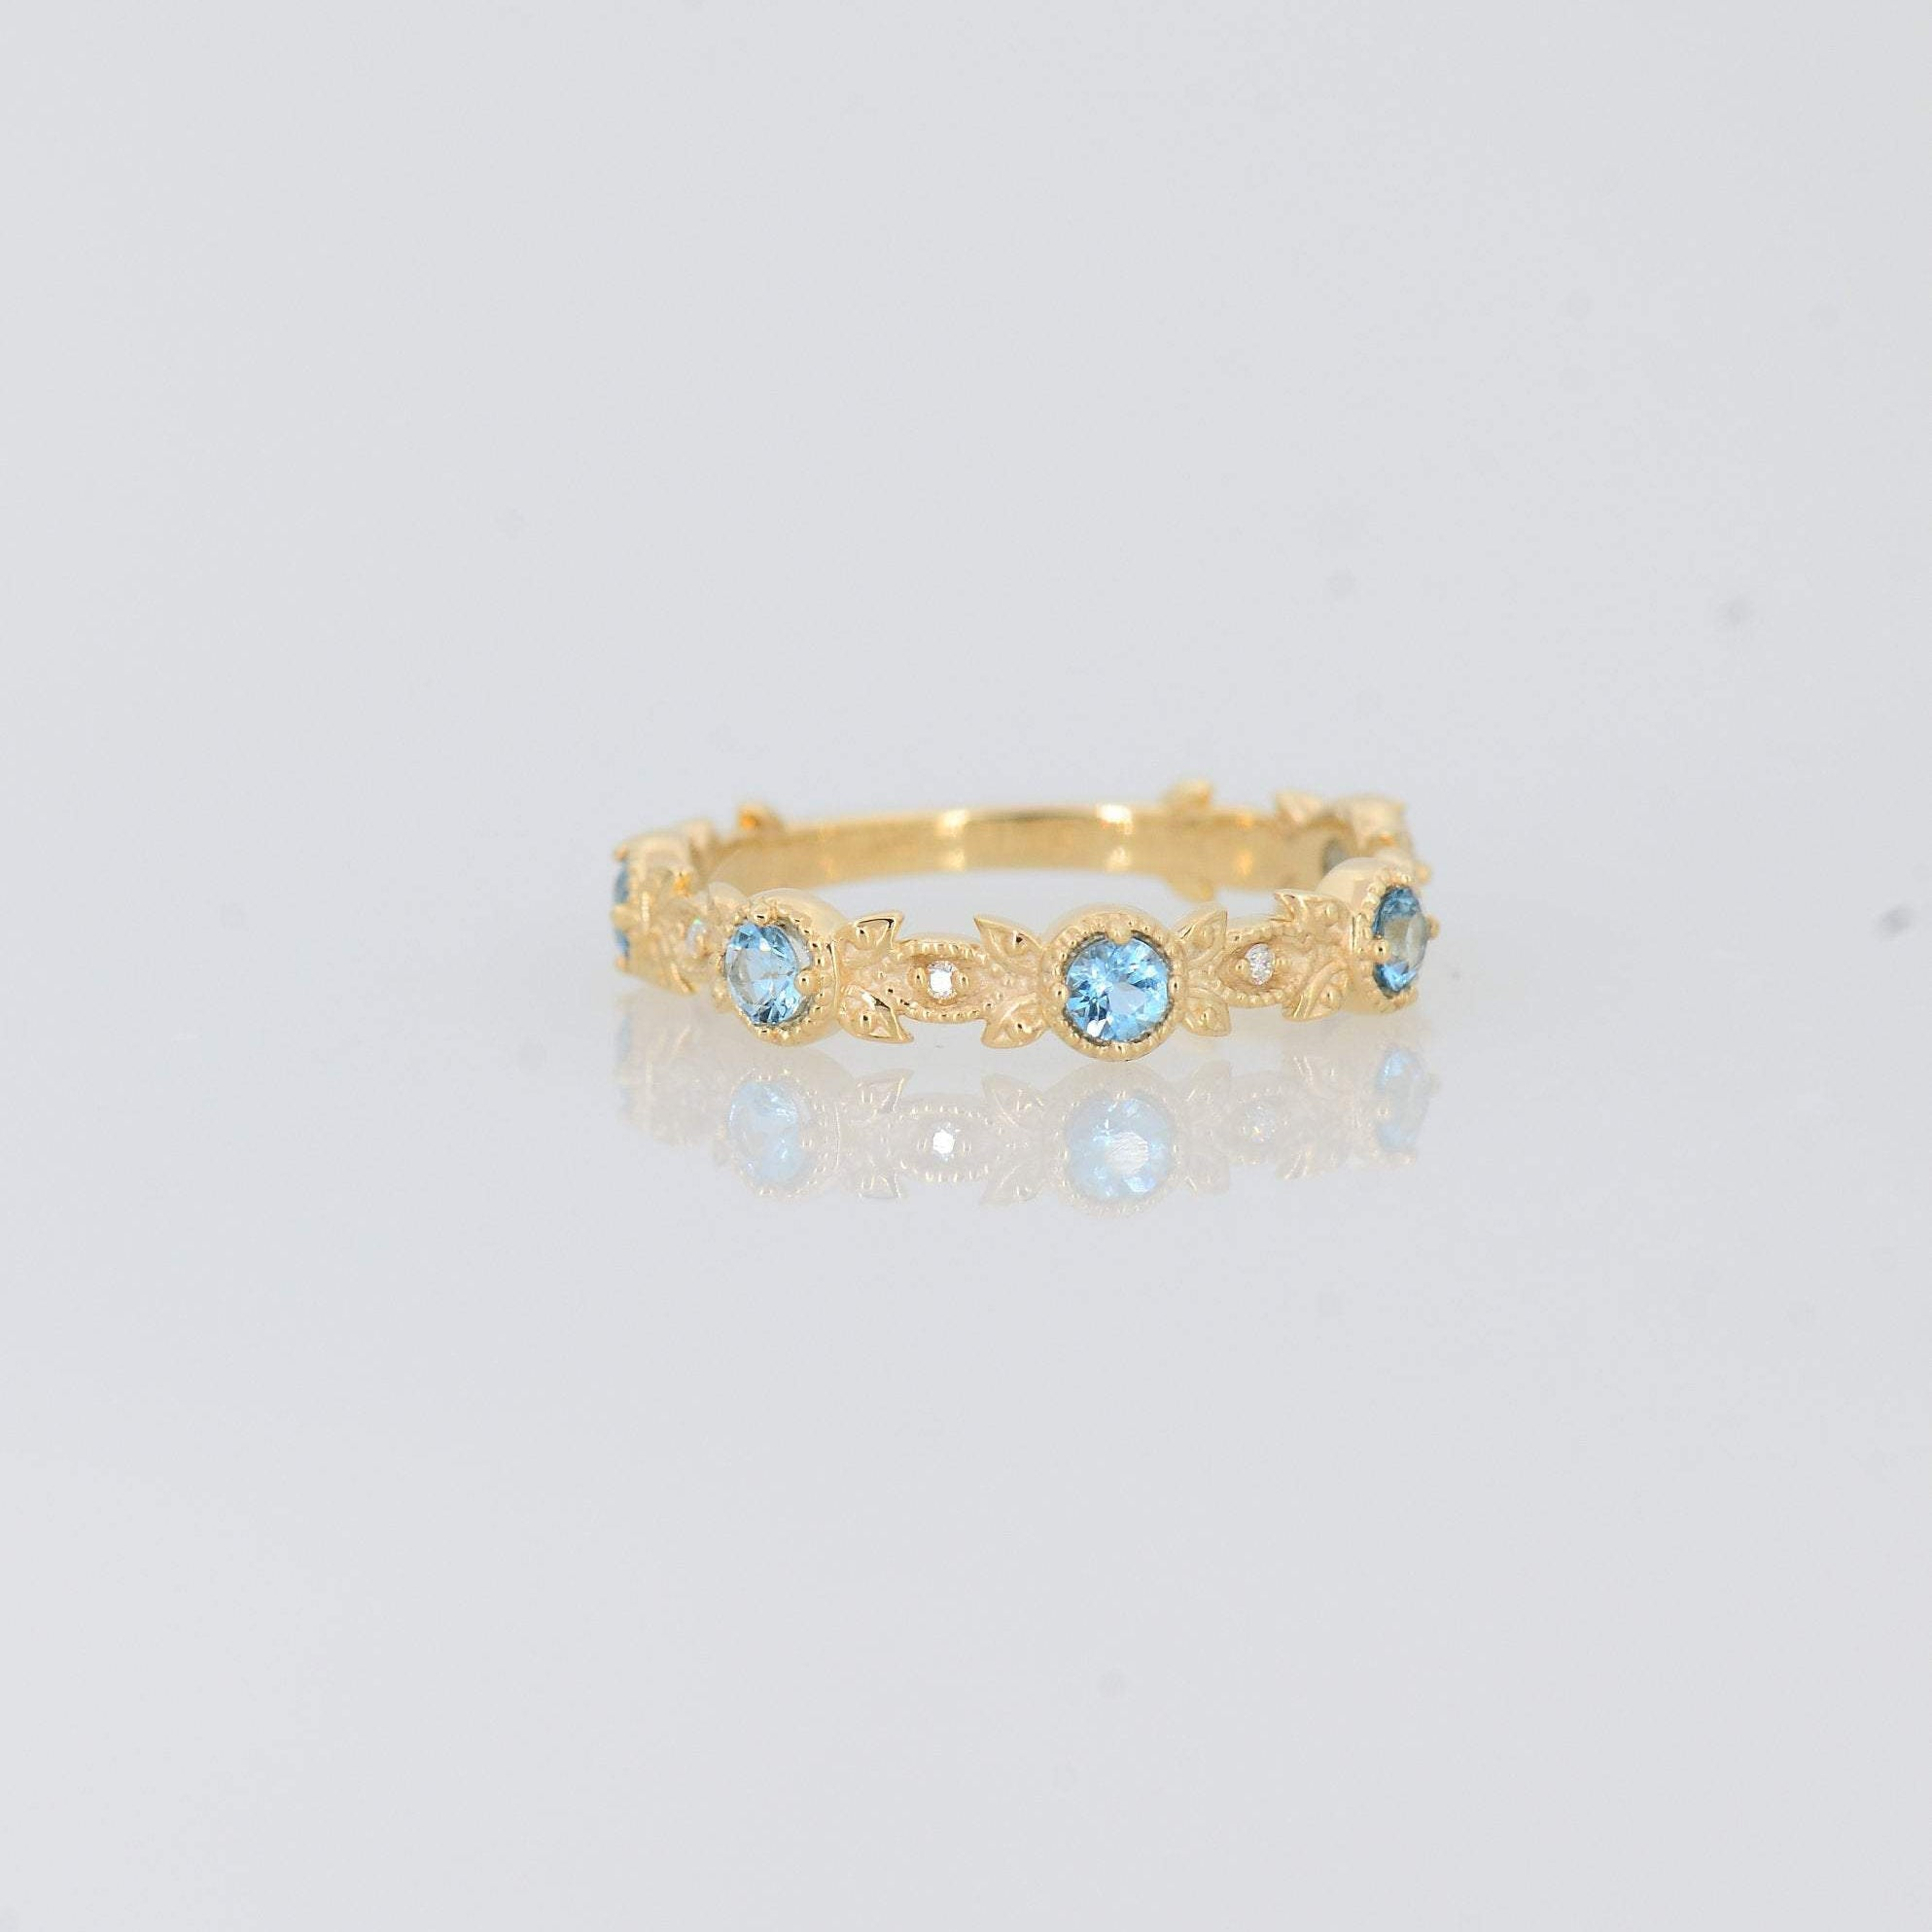 Aquamarine Engagement Ring, Delicate Diamond Ring